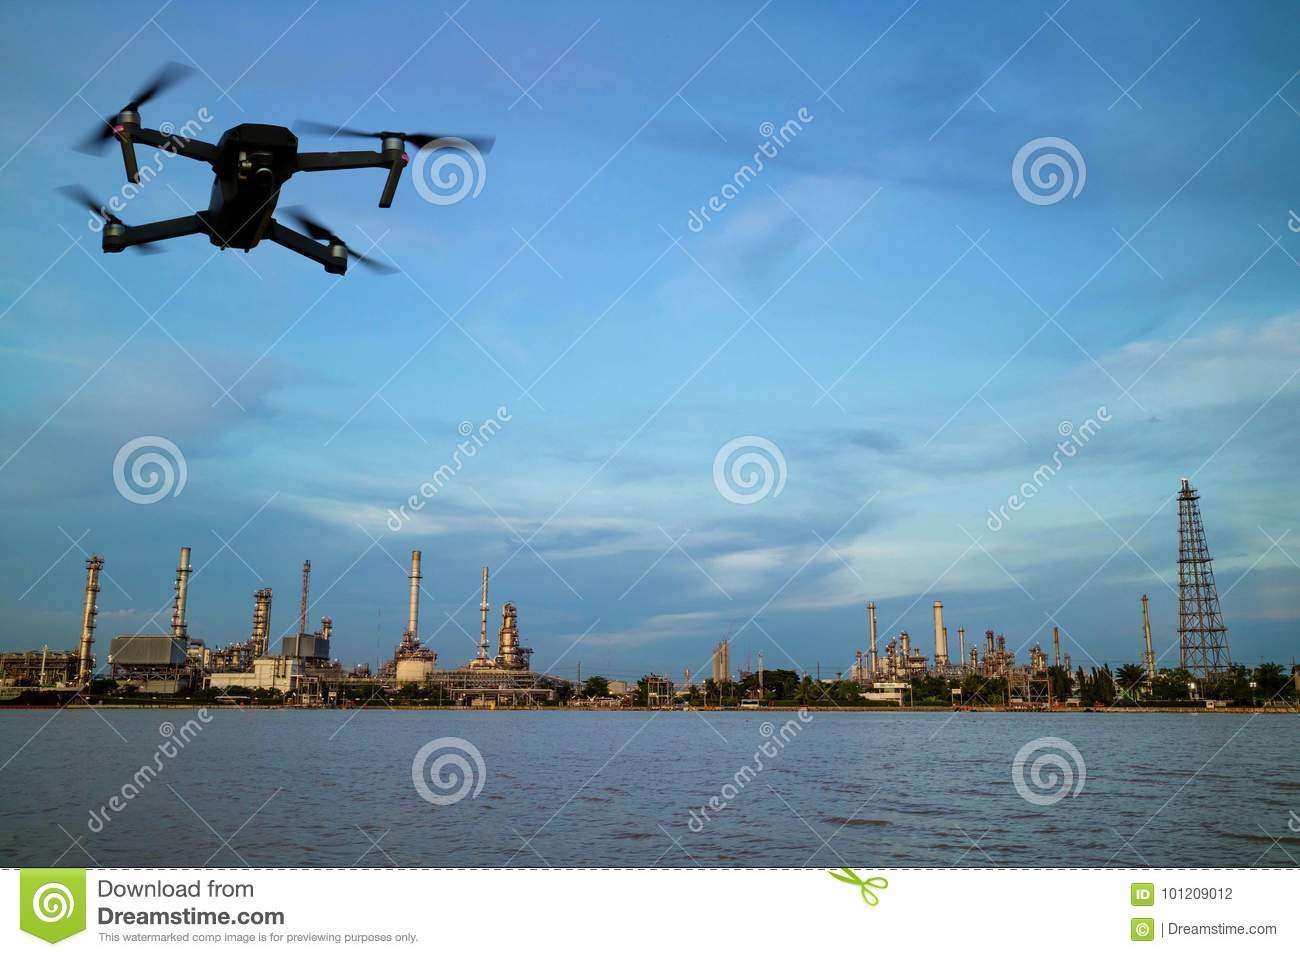 Oil refinery plant near river and drone